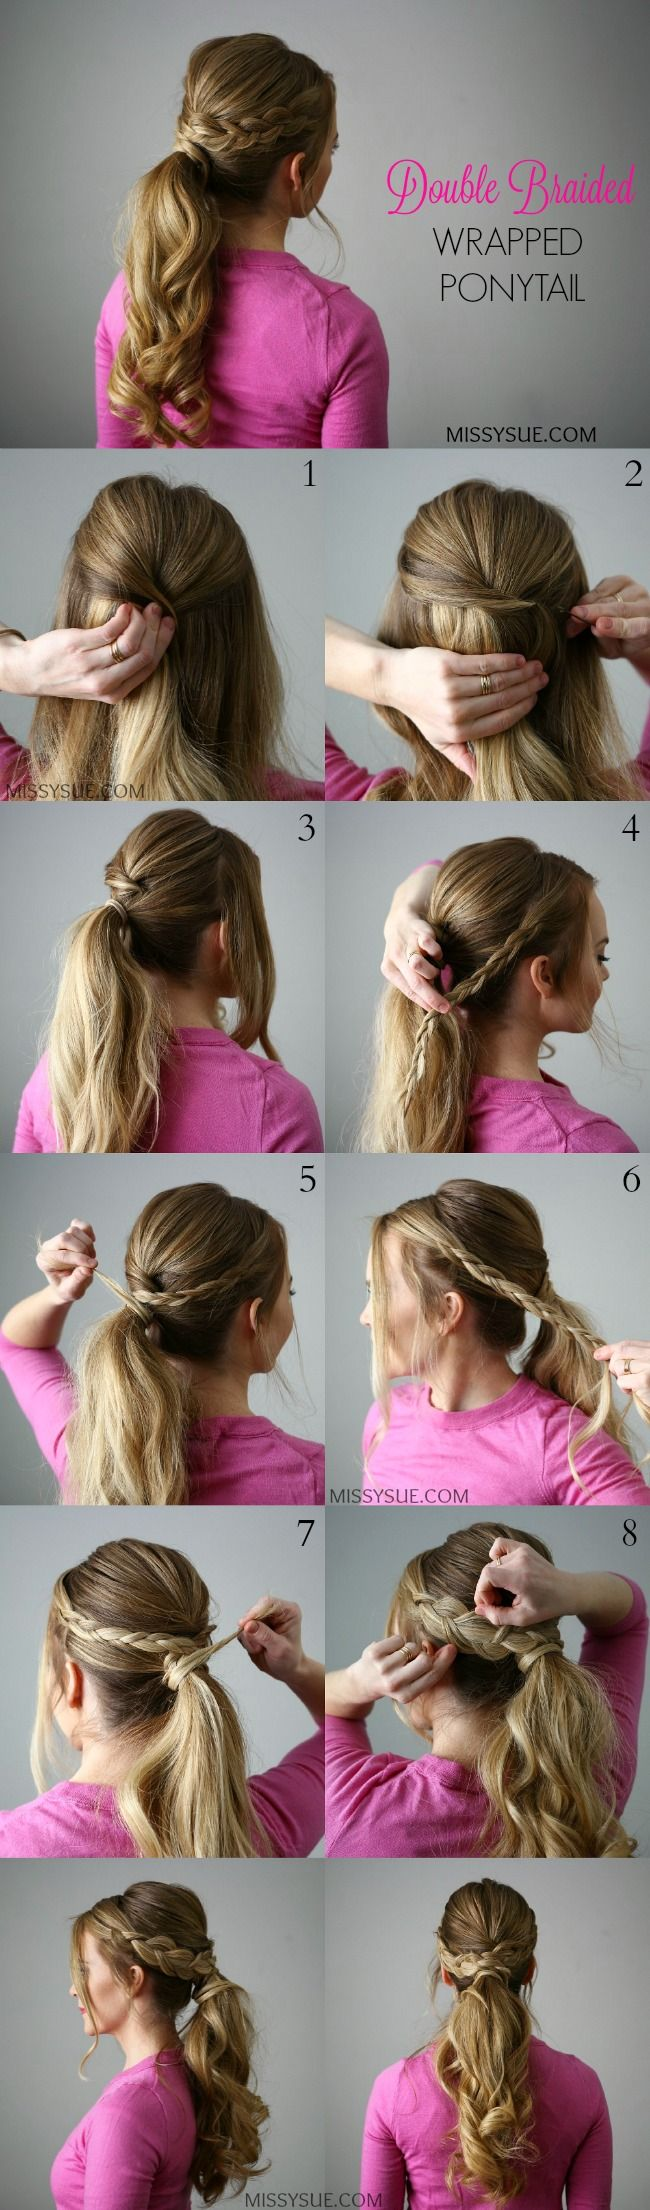 Adding some pretty braids to a traditional ponytail is a quick and easy way to dress it up. The holidays are right around the cornerand now's the time to be thinking about how you will be styling your hair for that upcoming party. This Double Braid Wrapped Ponytail is quick and easy and doesn't require any tricky braiding. There is a little extra step with the ponytail however which adds a little extra something to a traditional look, taking it up a notch for a special occasion or really…